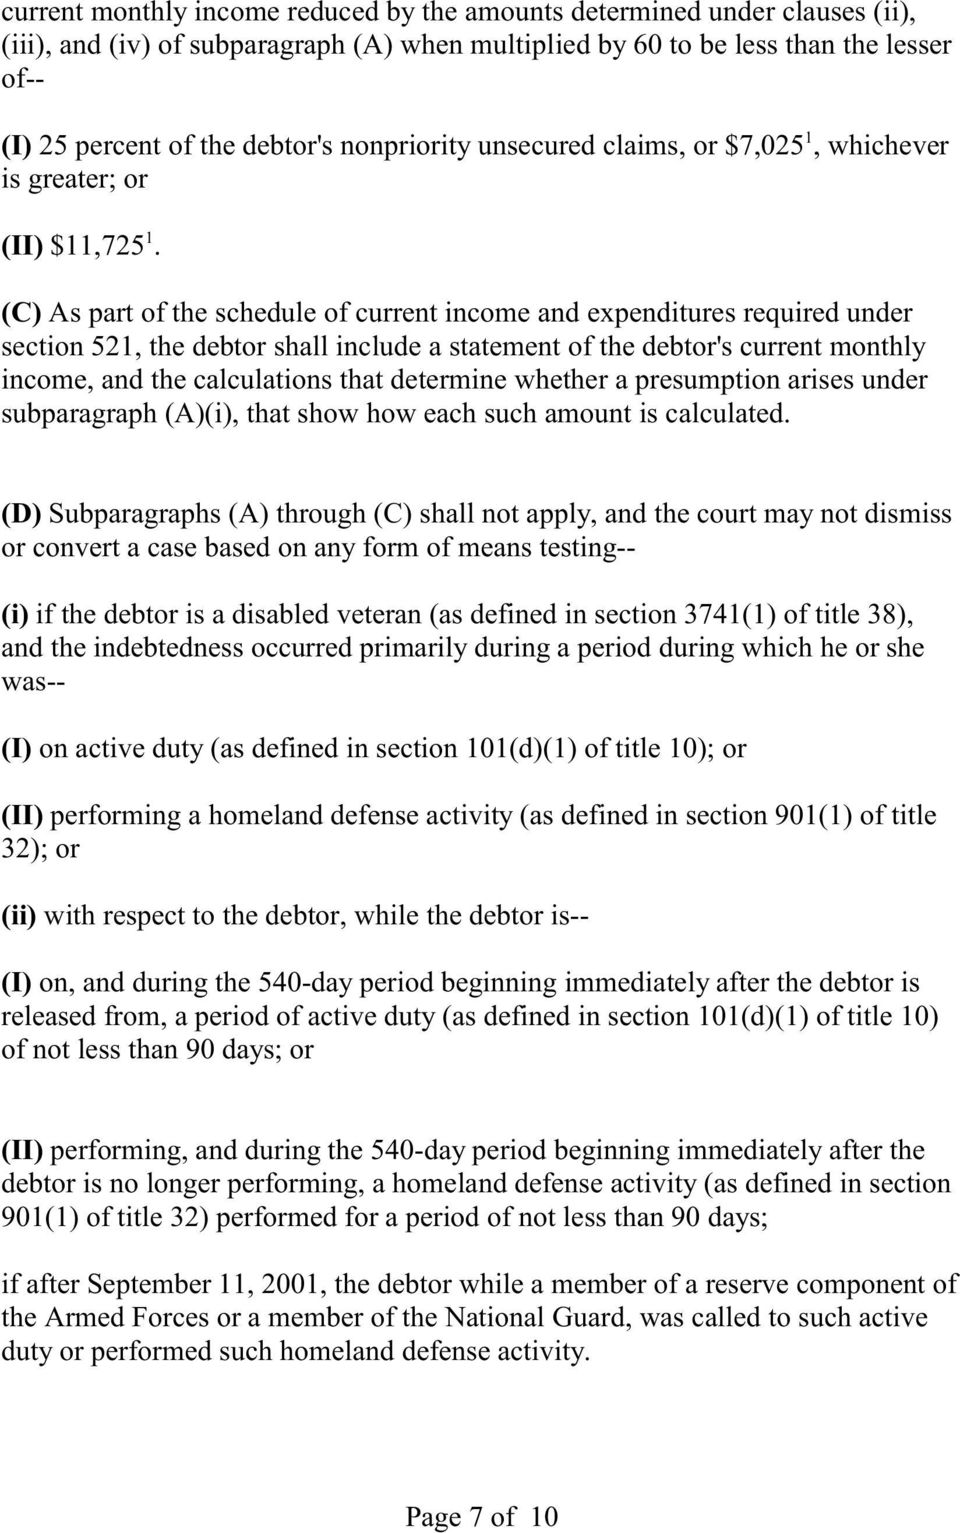 (C) As part of the schedule of current income and expenditures required under section 521, the debtor shall include a statement of the debtor's current monthly income, and the calculations that